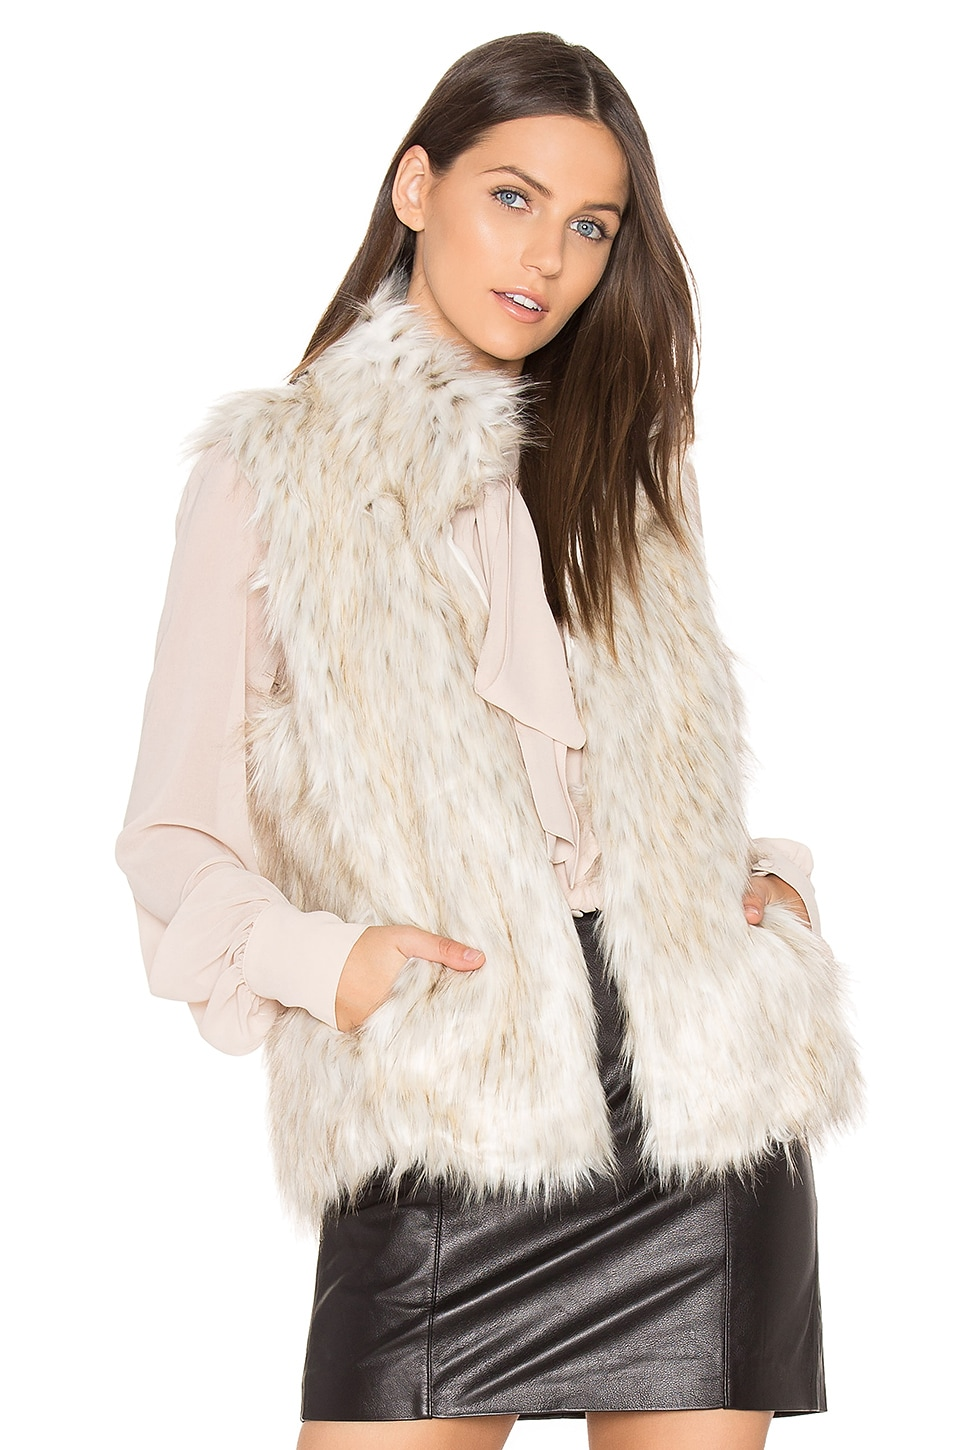 BB Dakota Brewer Faux Fur Vest in Dirty White